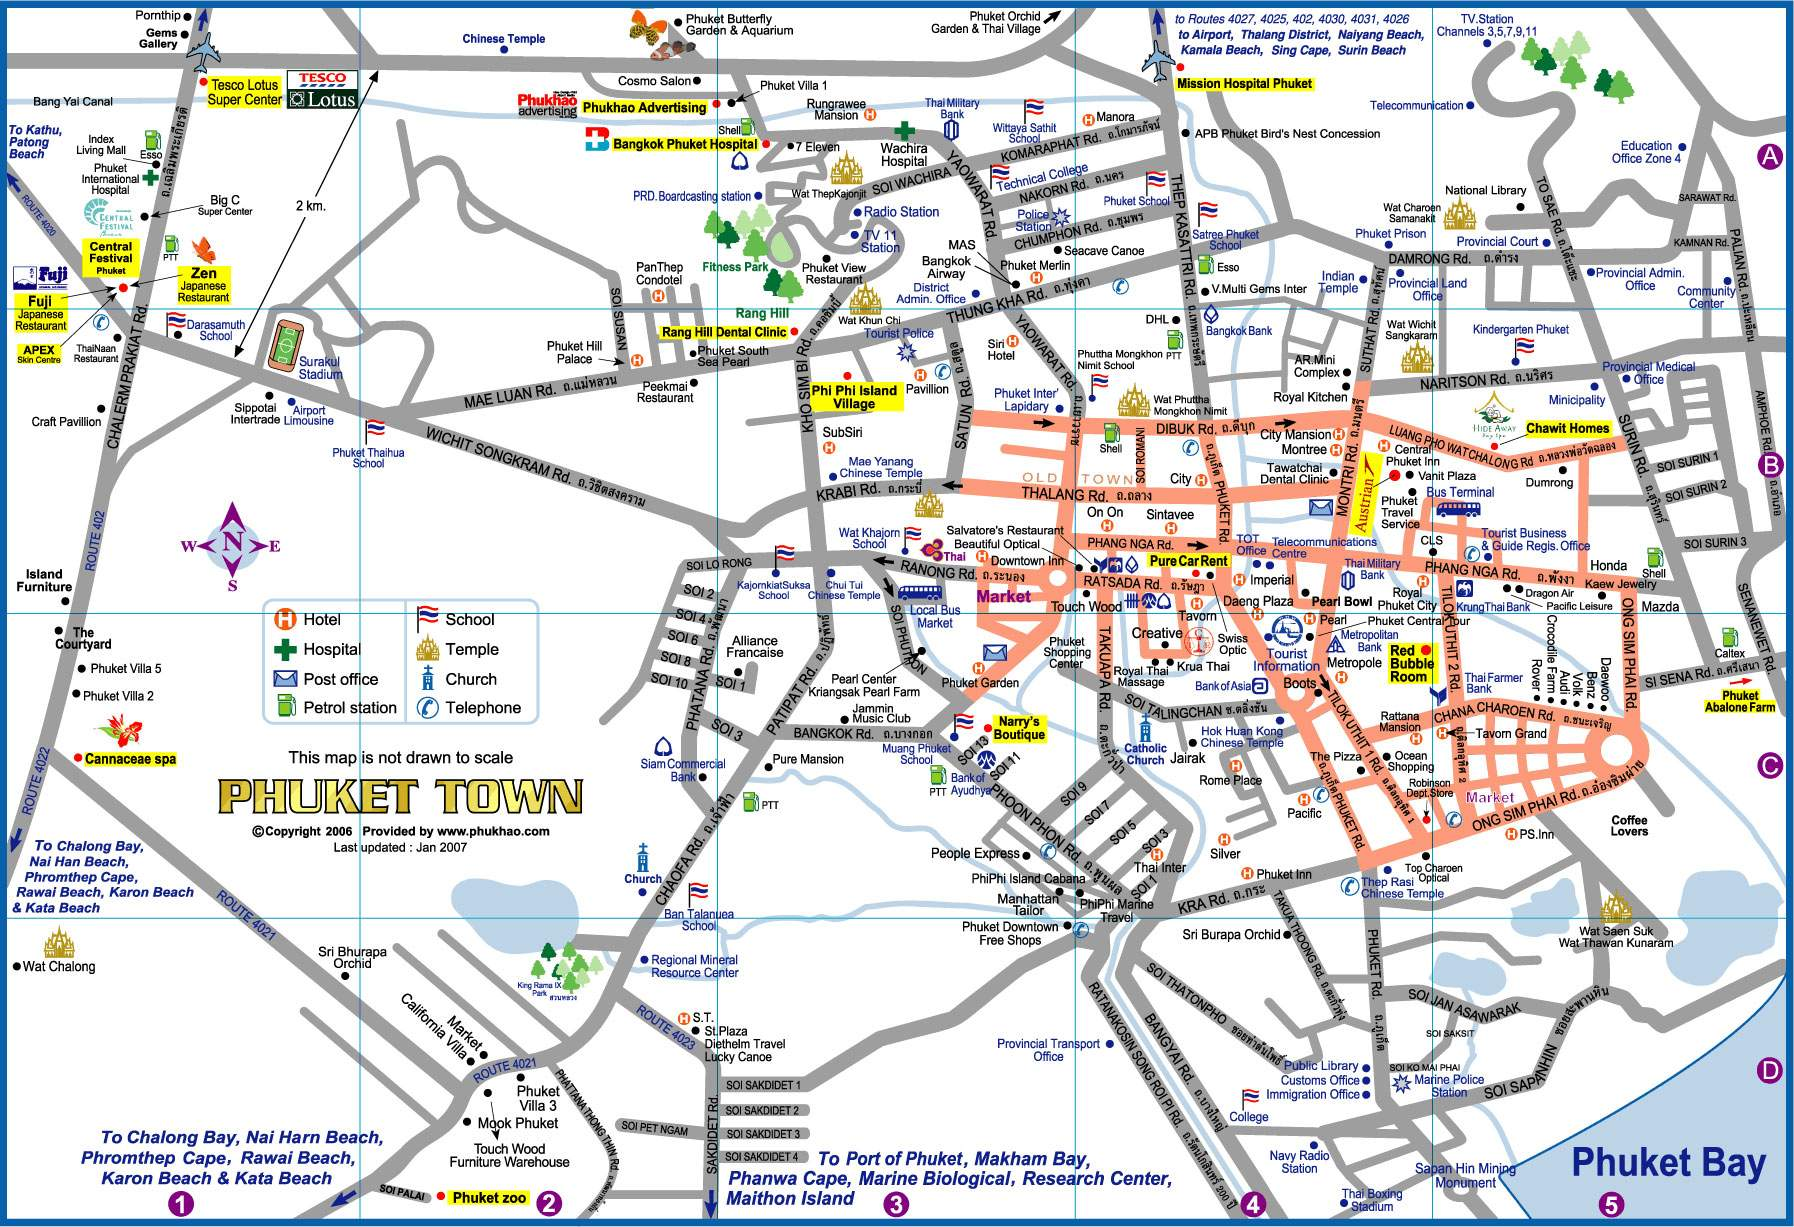 A road map of the Phuket Town